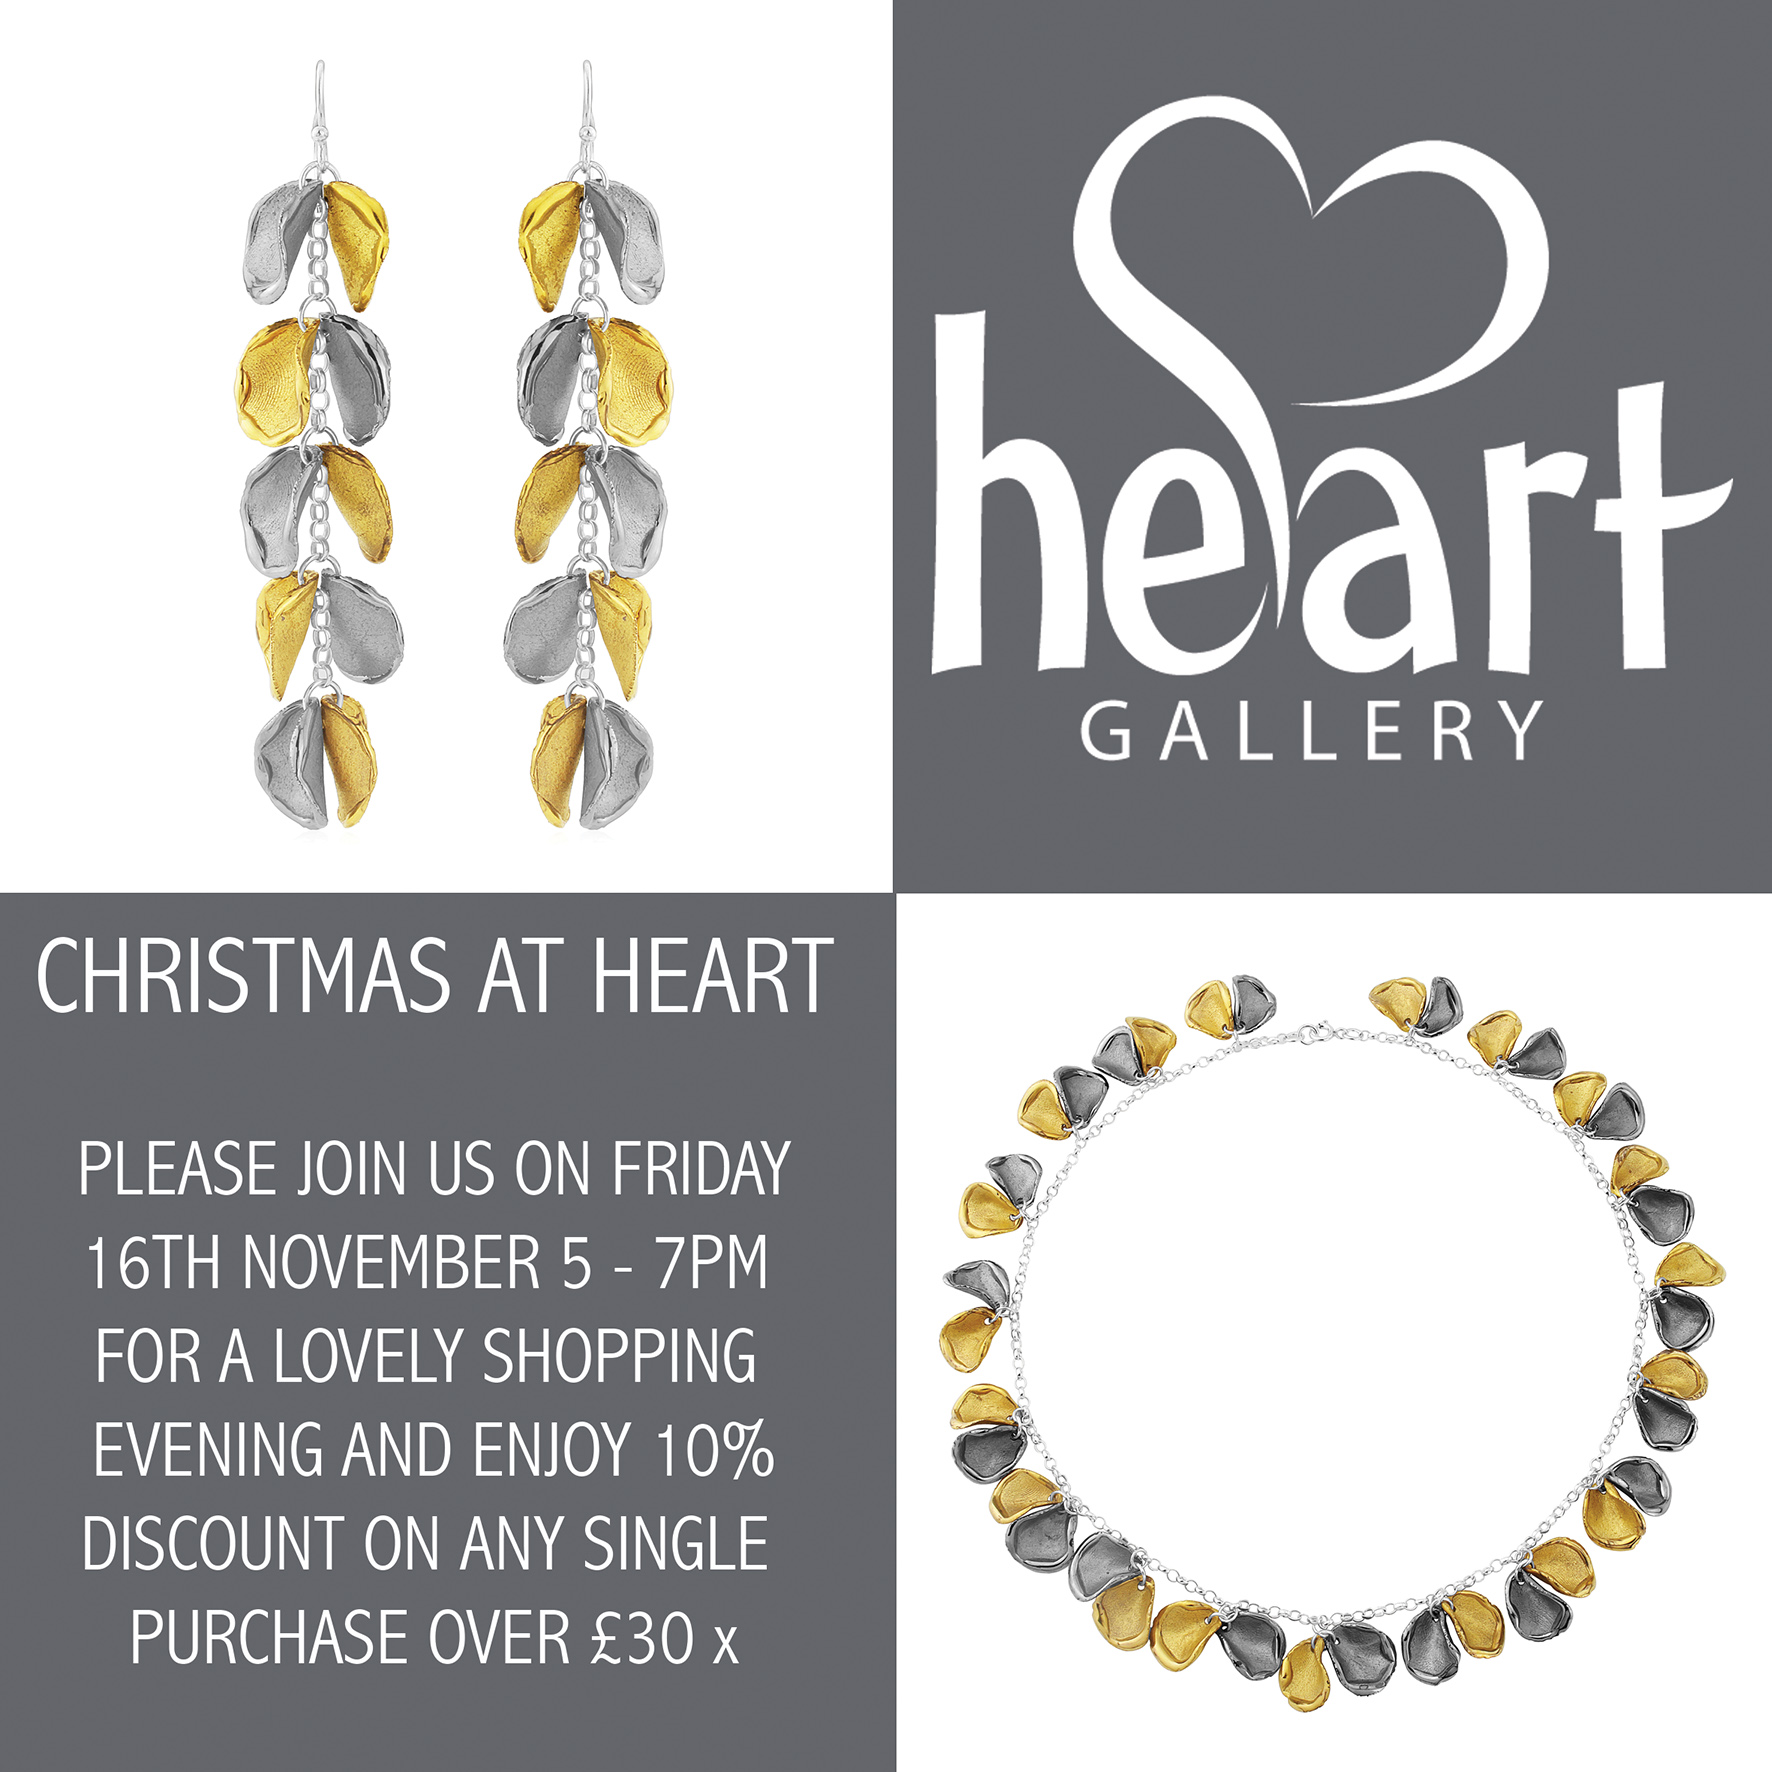 Christmas at Heart Gallery